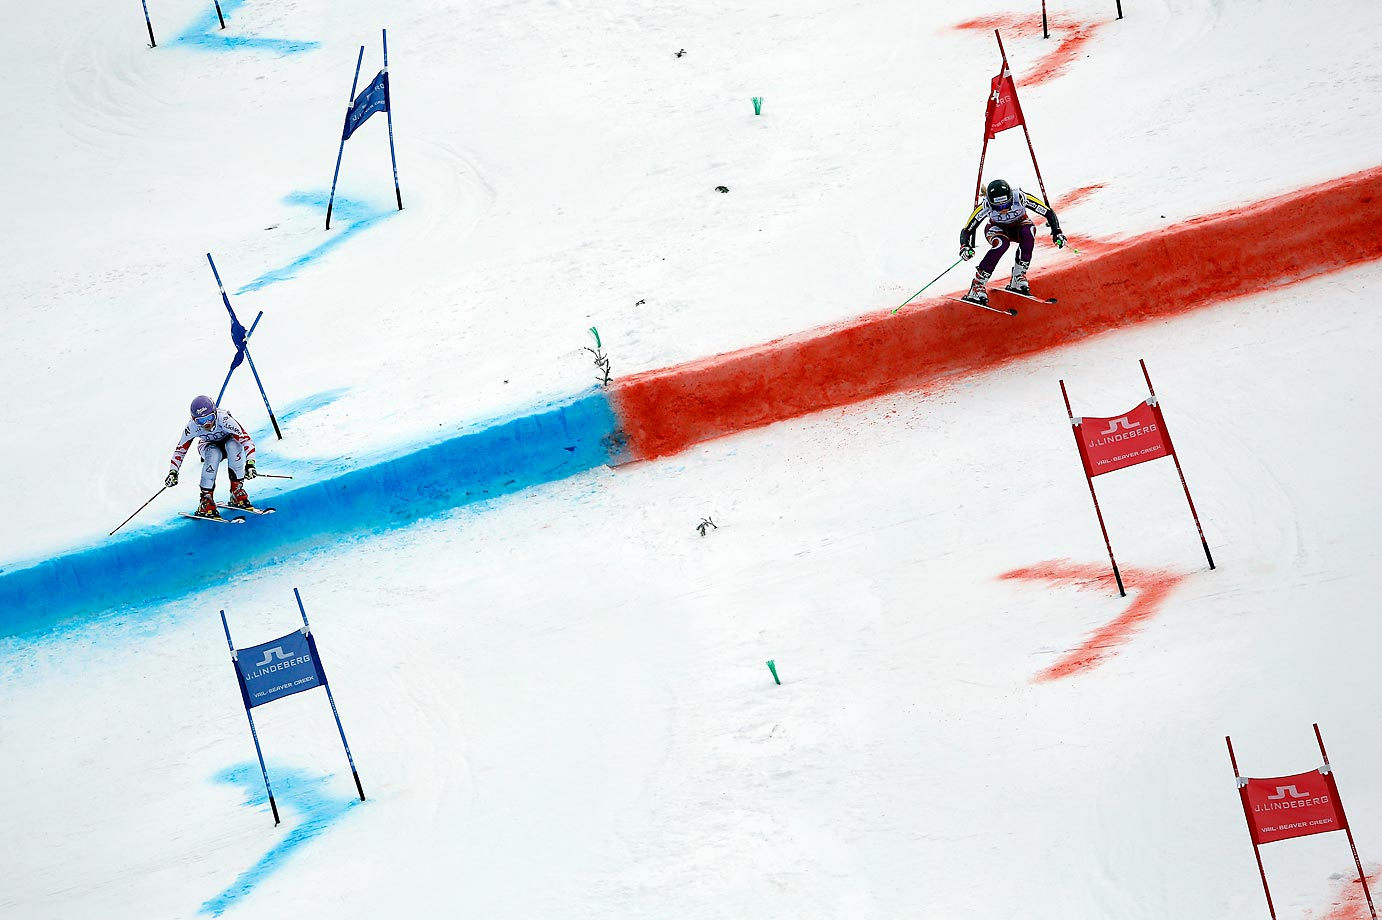 Michaela Kirchgasser of Austria (left) races Ragnhild Mowinckel of Norway during the Nations Team Event at Golden Peak Stadium on Day 9 of the 2015 FIS Alpine World Ski Championships.